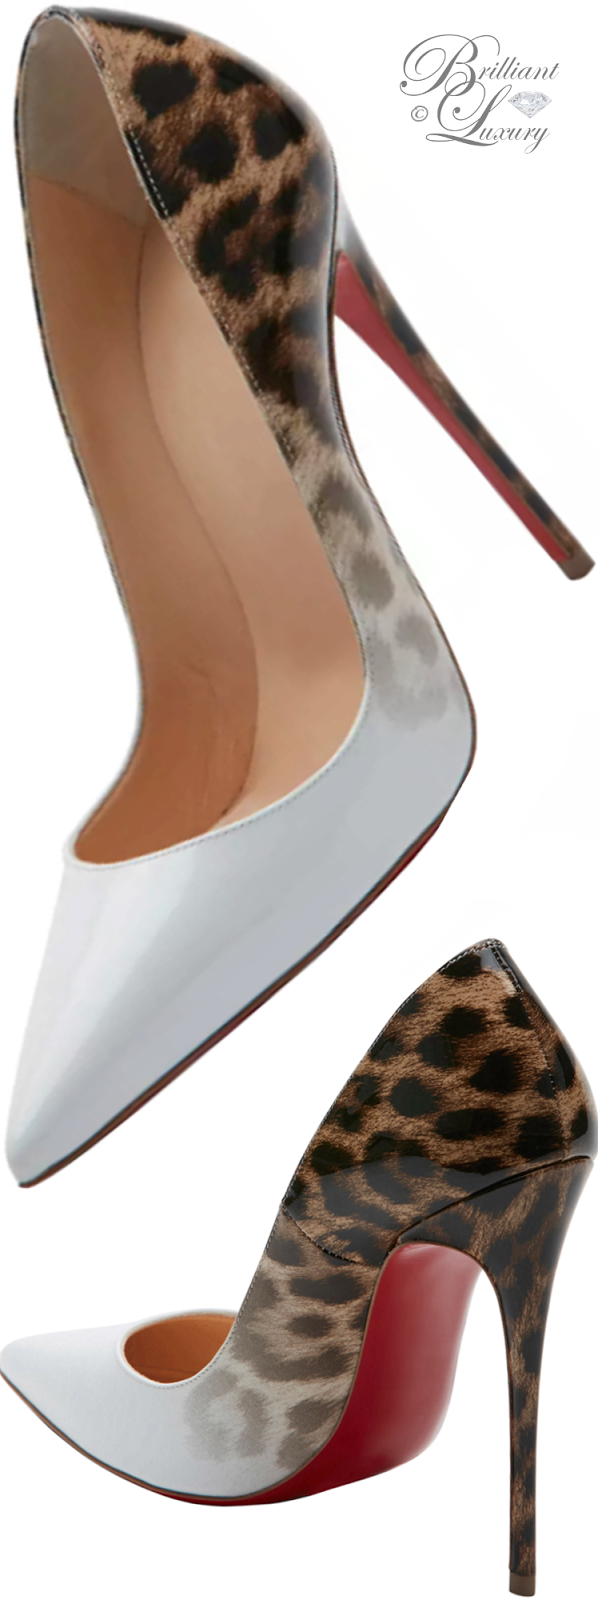 Brilliant Luxury ♦ Christian Louboutin So Kate Degrade Red Sole Pump